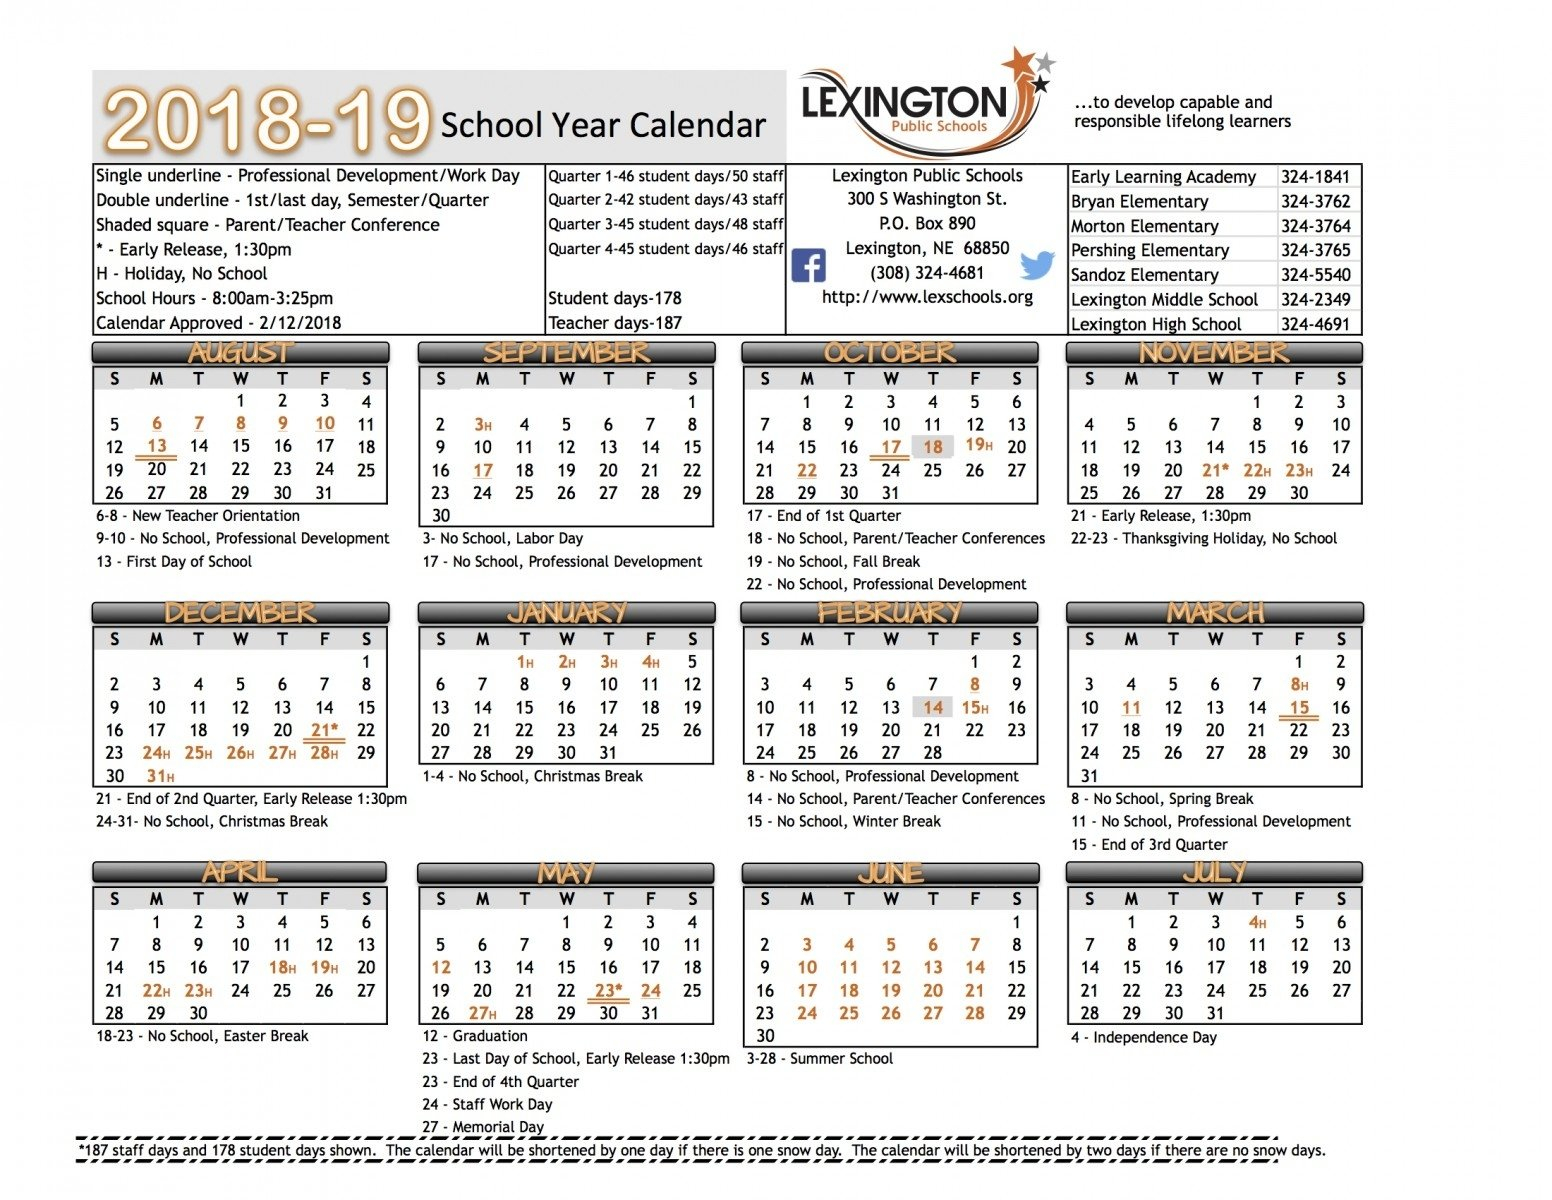 Exceptional Lexington 1 School Calendar • Printable Blank Calendar Lexington 1 Calendar 2019